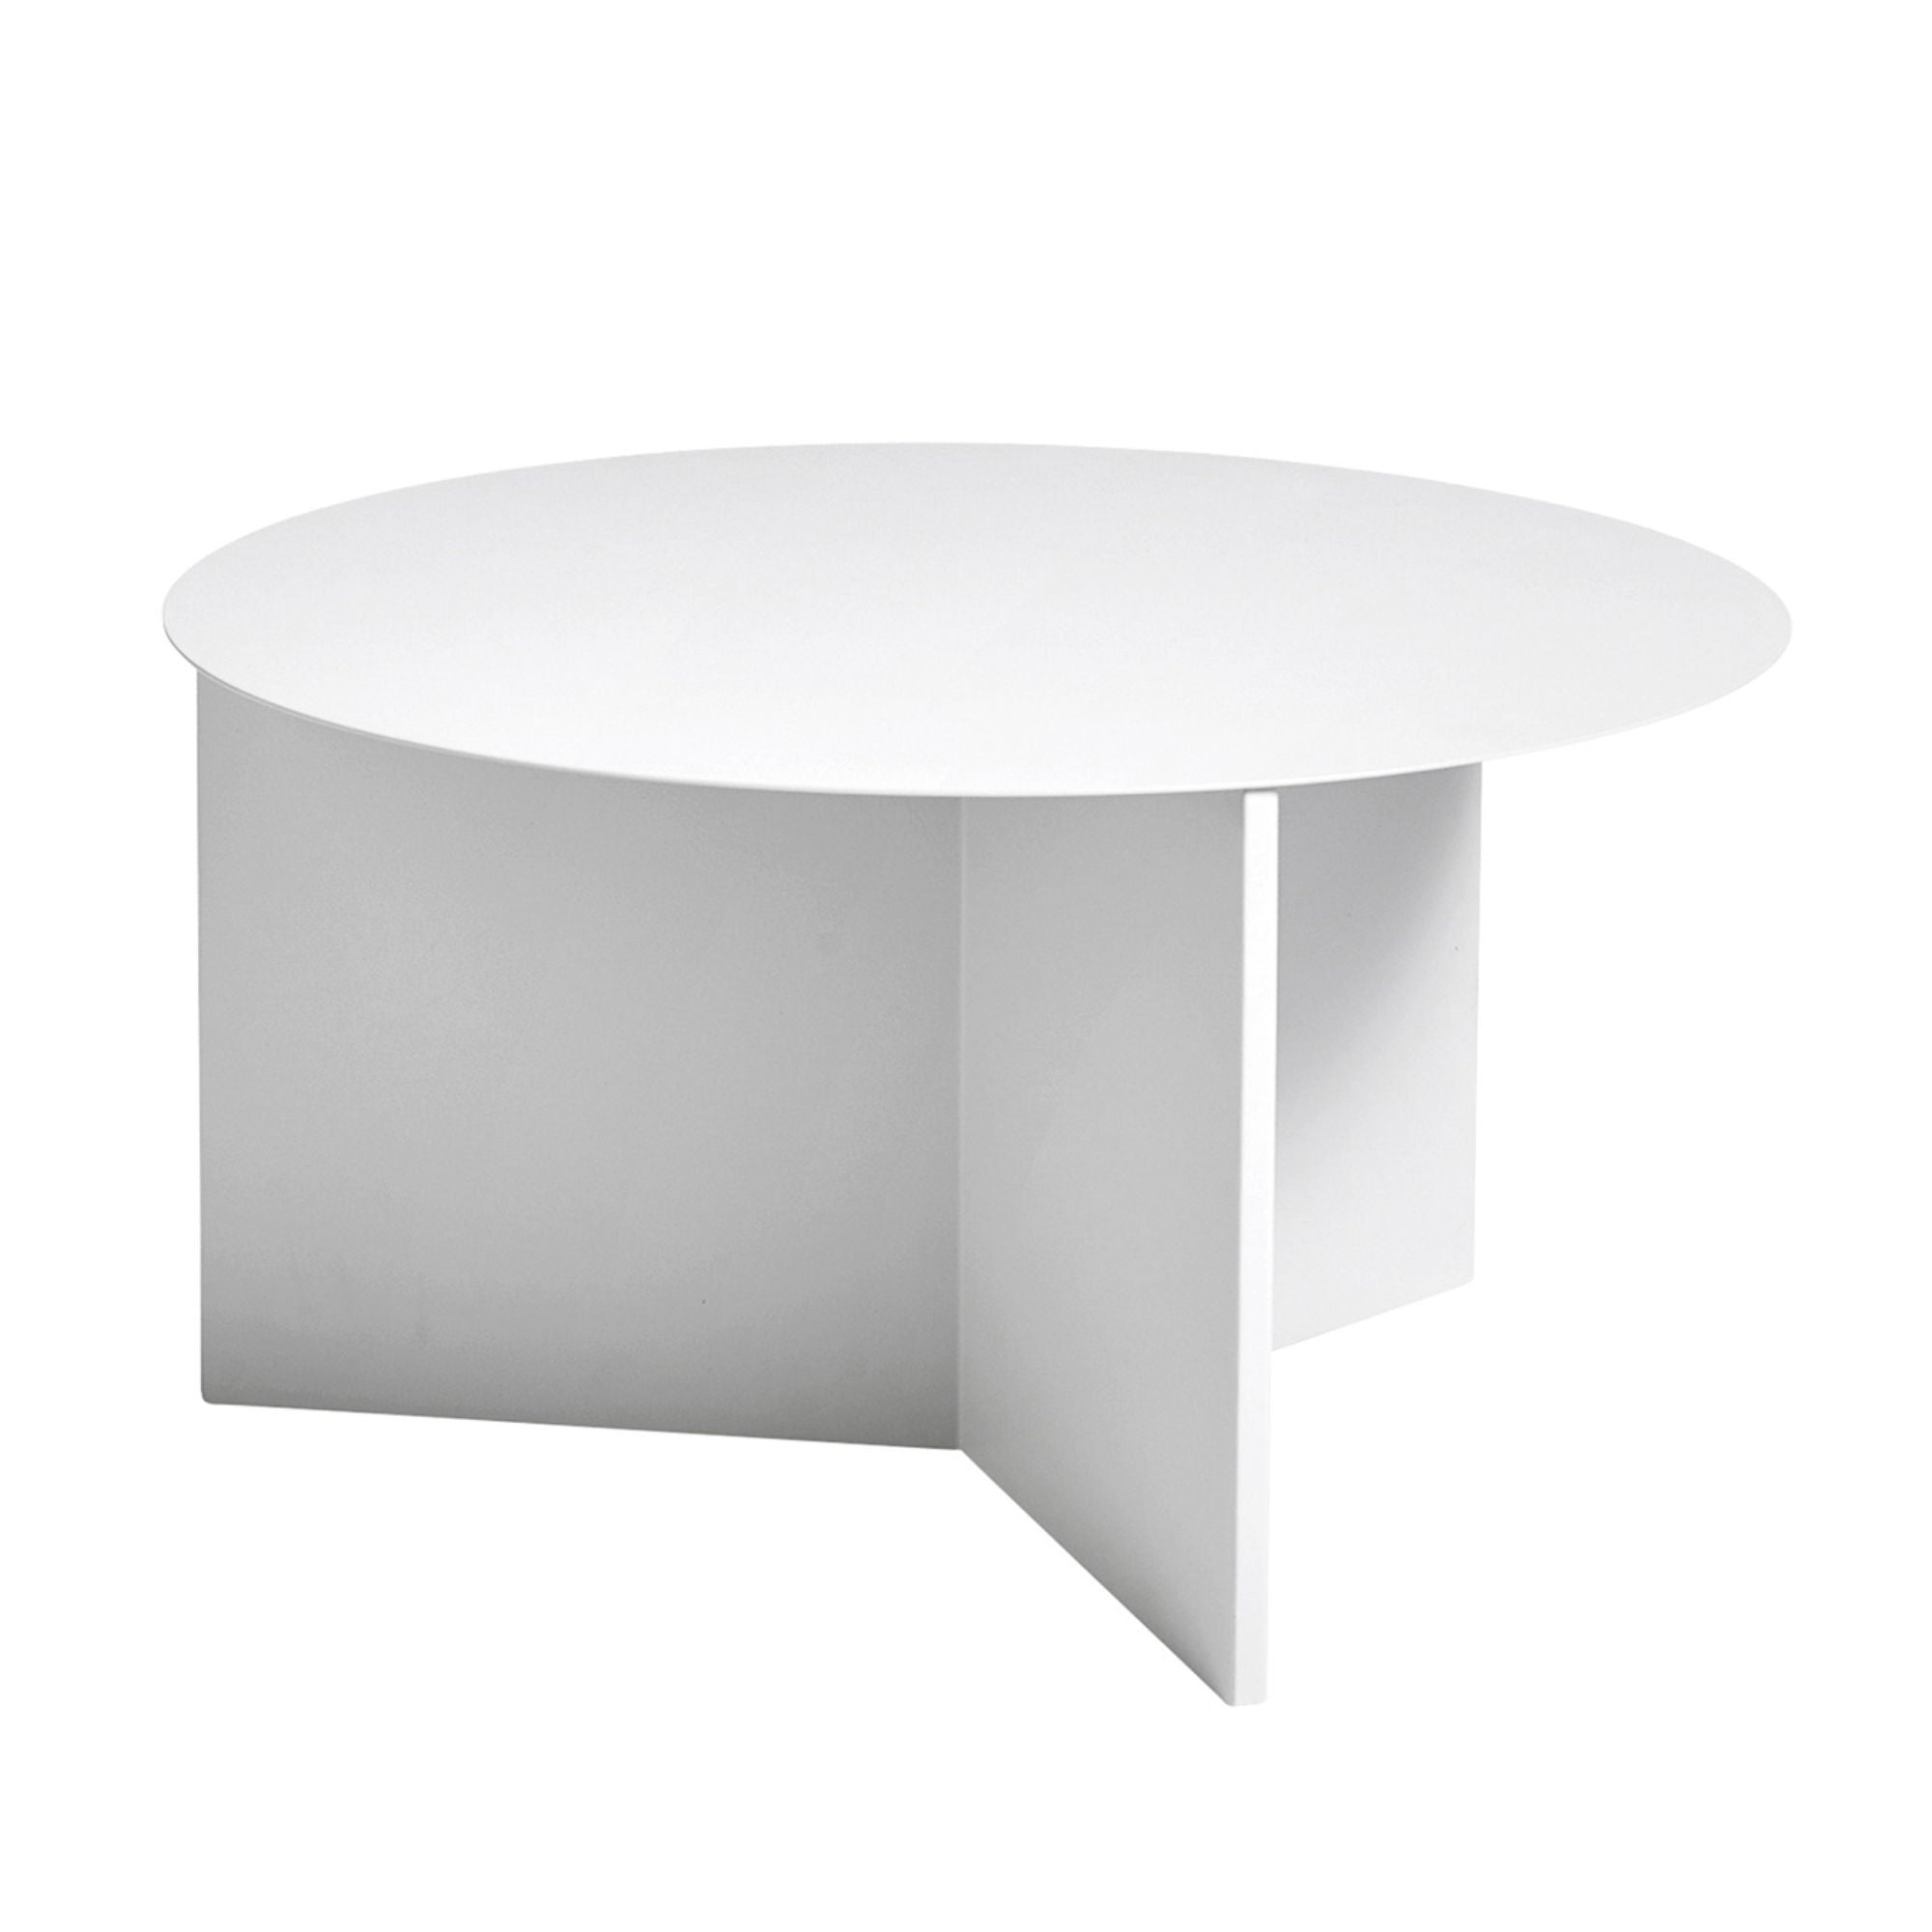 Hay Slit Coffee Table Round XL Φ65 , White